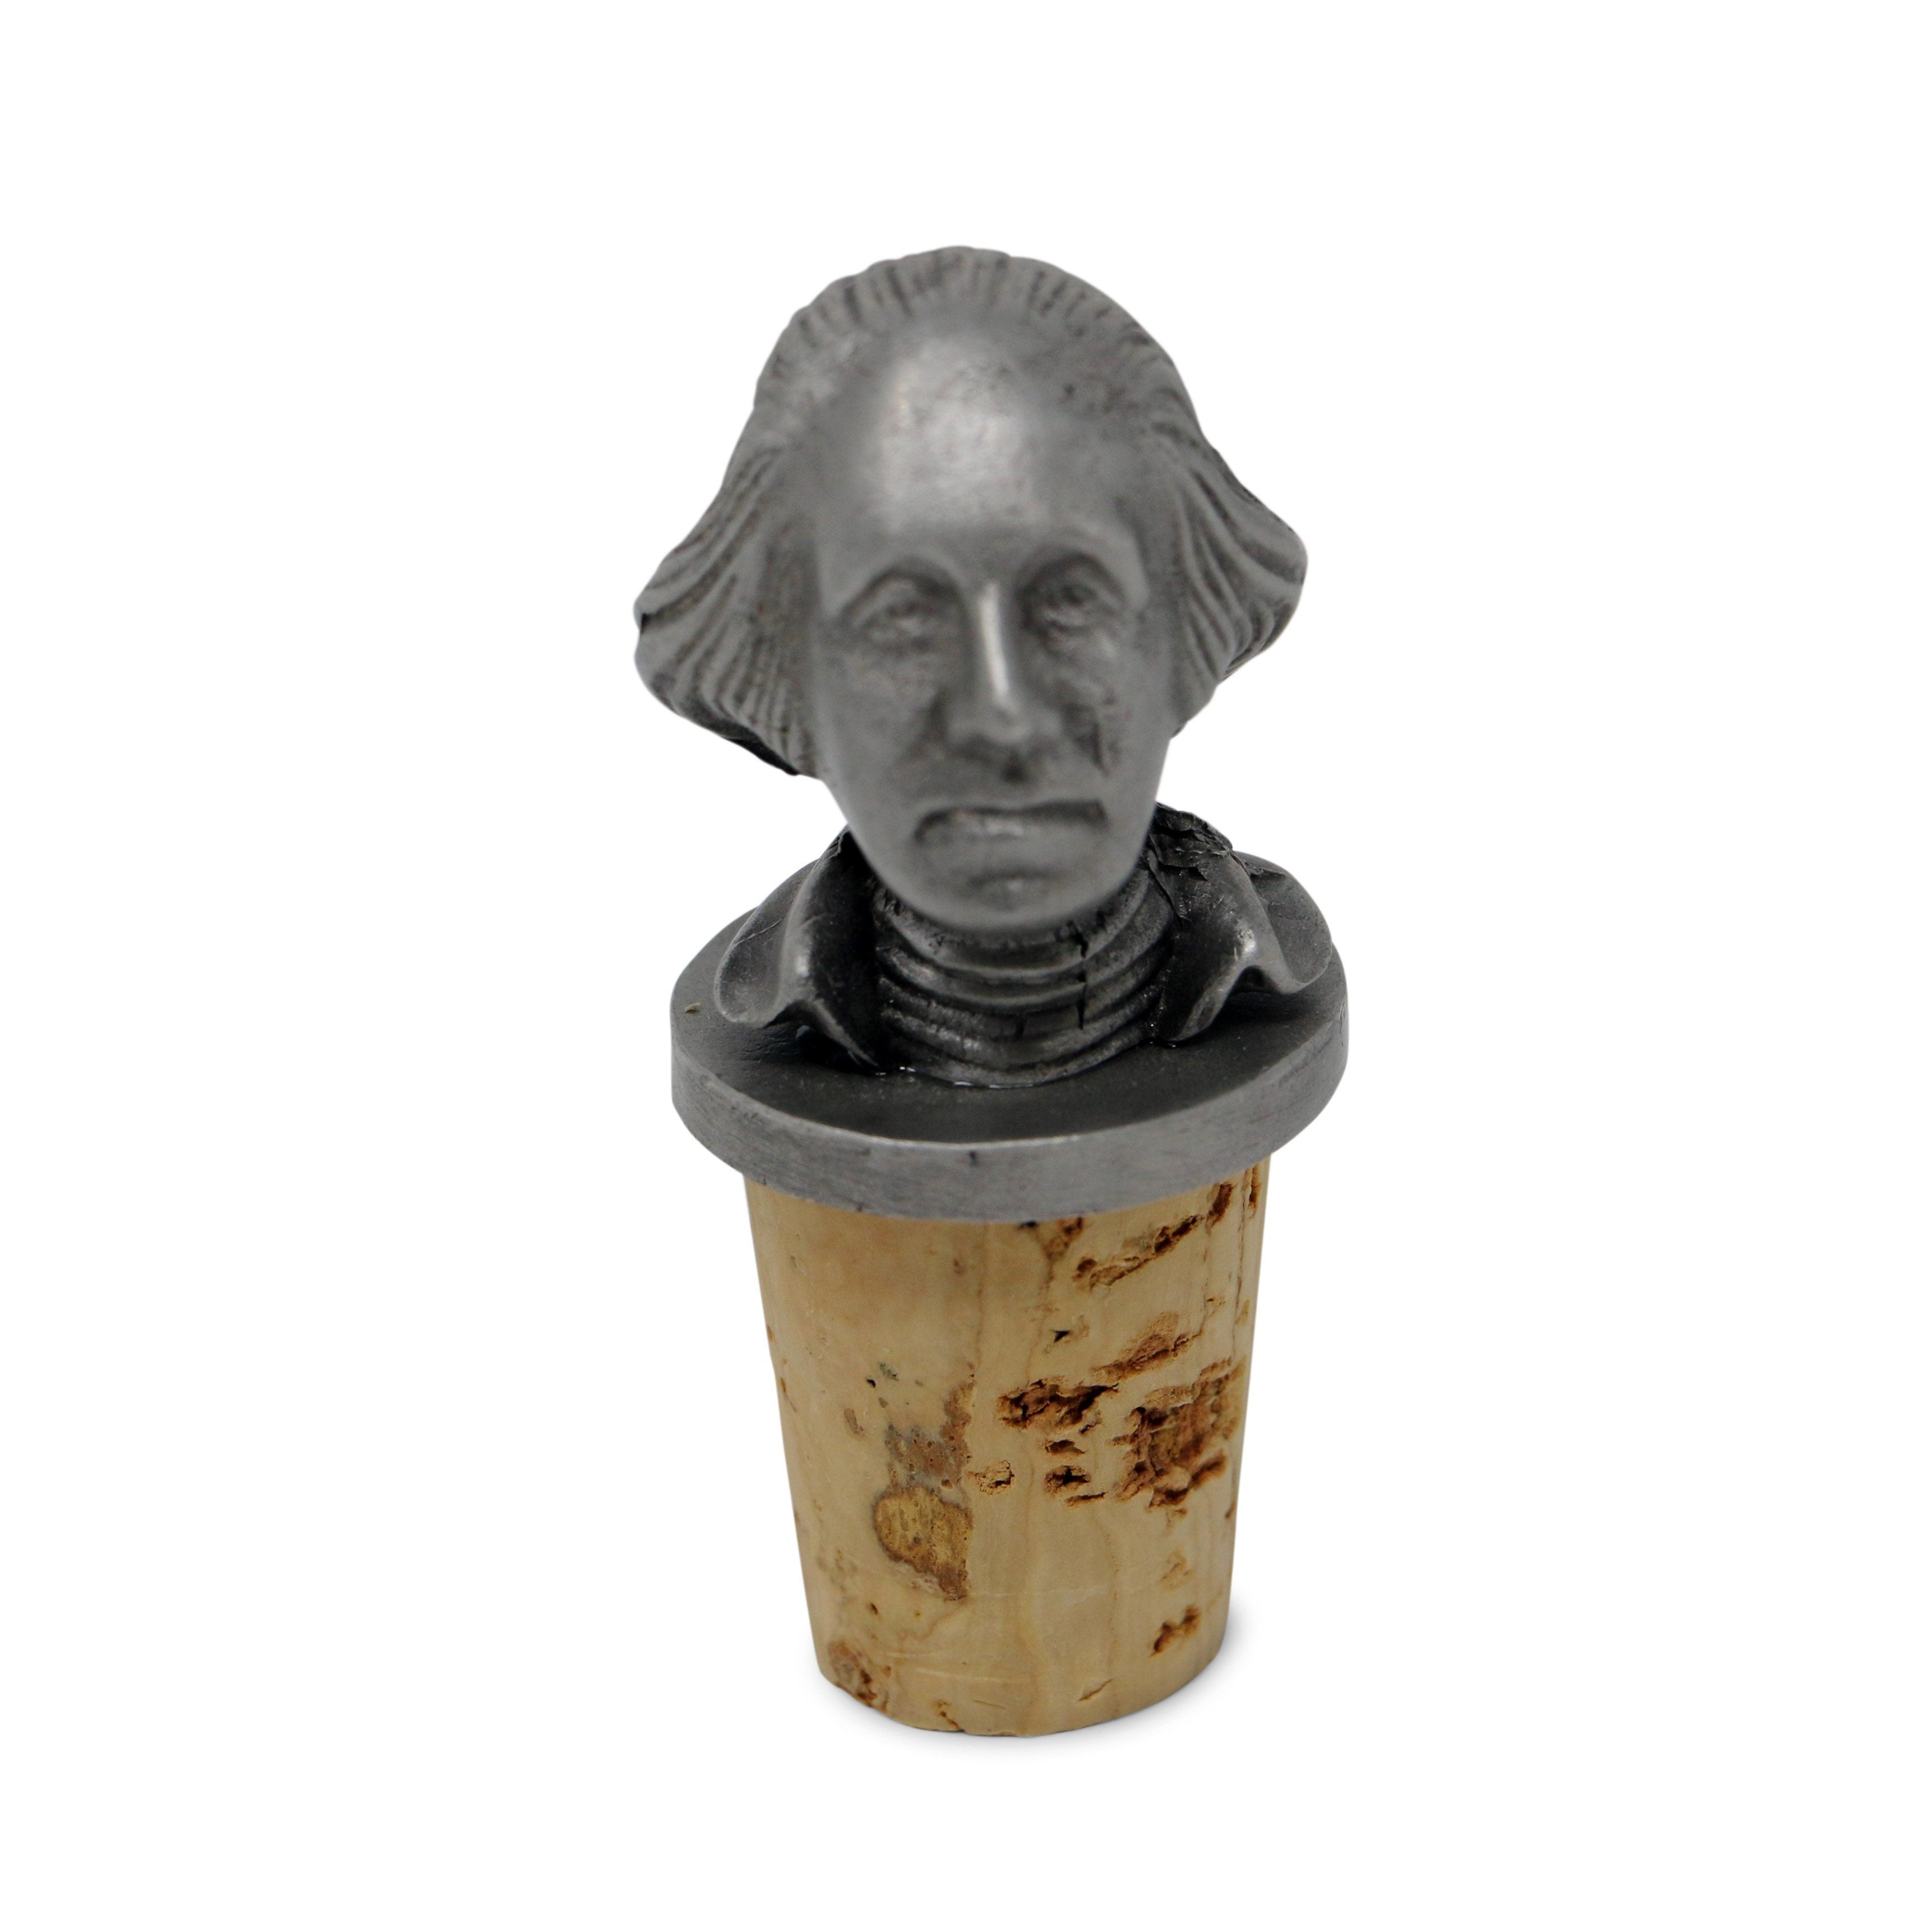 George Washington Pewter Bottle Stopper